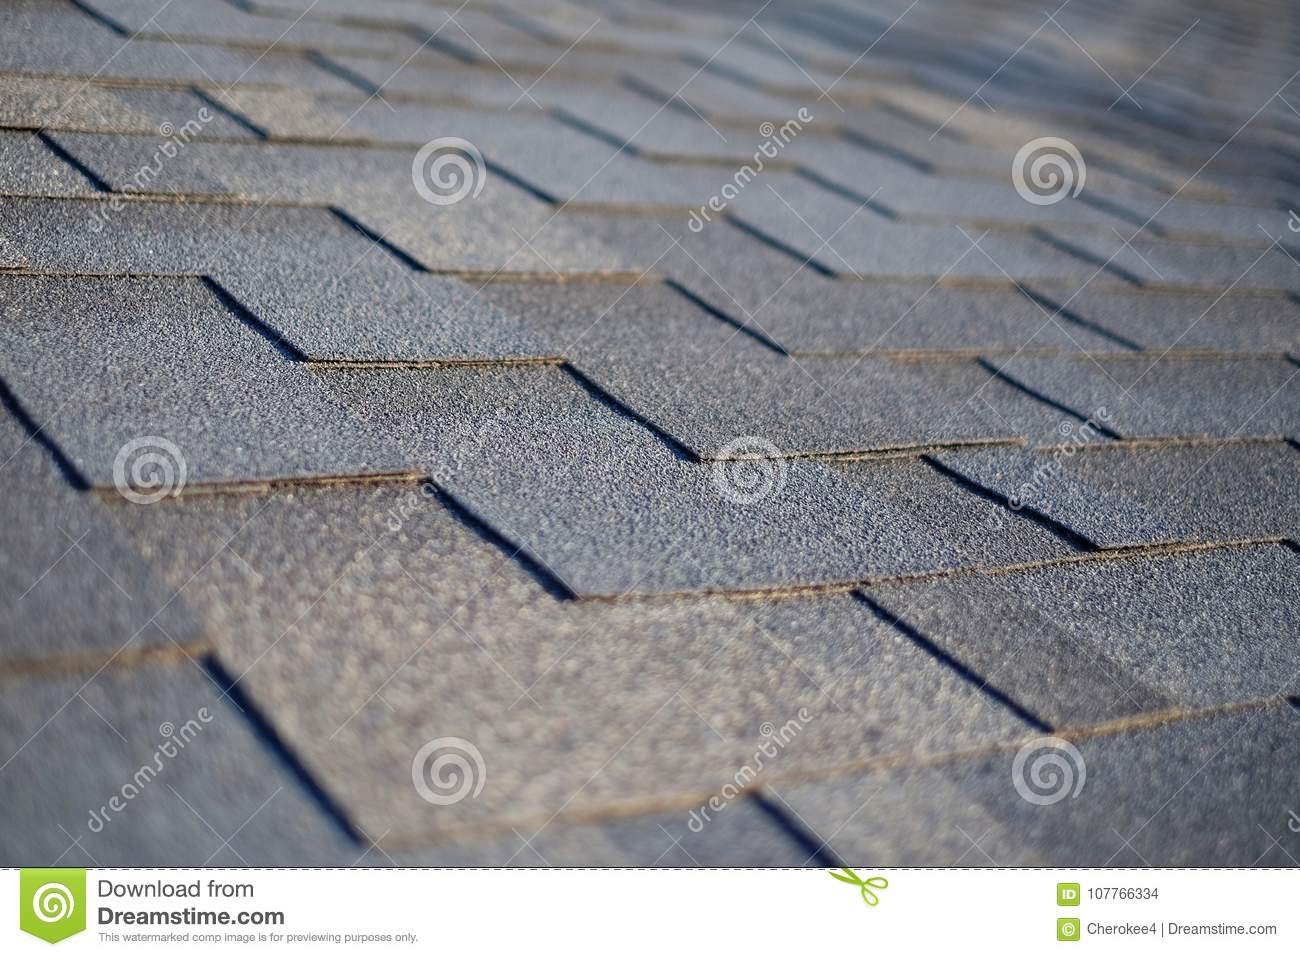 Close up view on Asphalt Roofing Shingles Background. Roof Shingles - Roofing